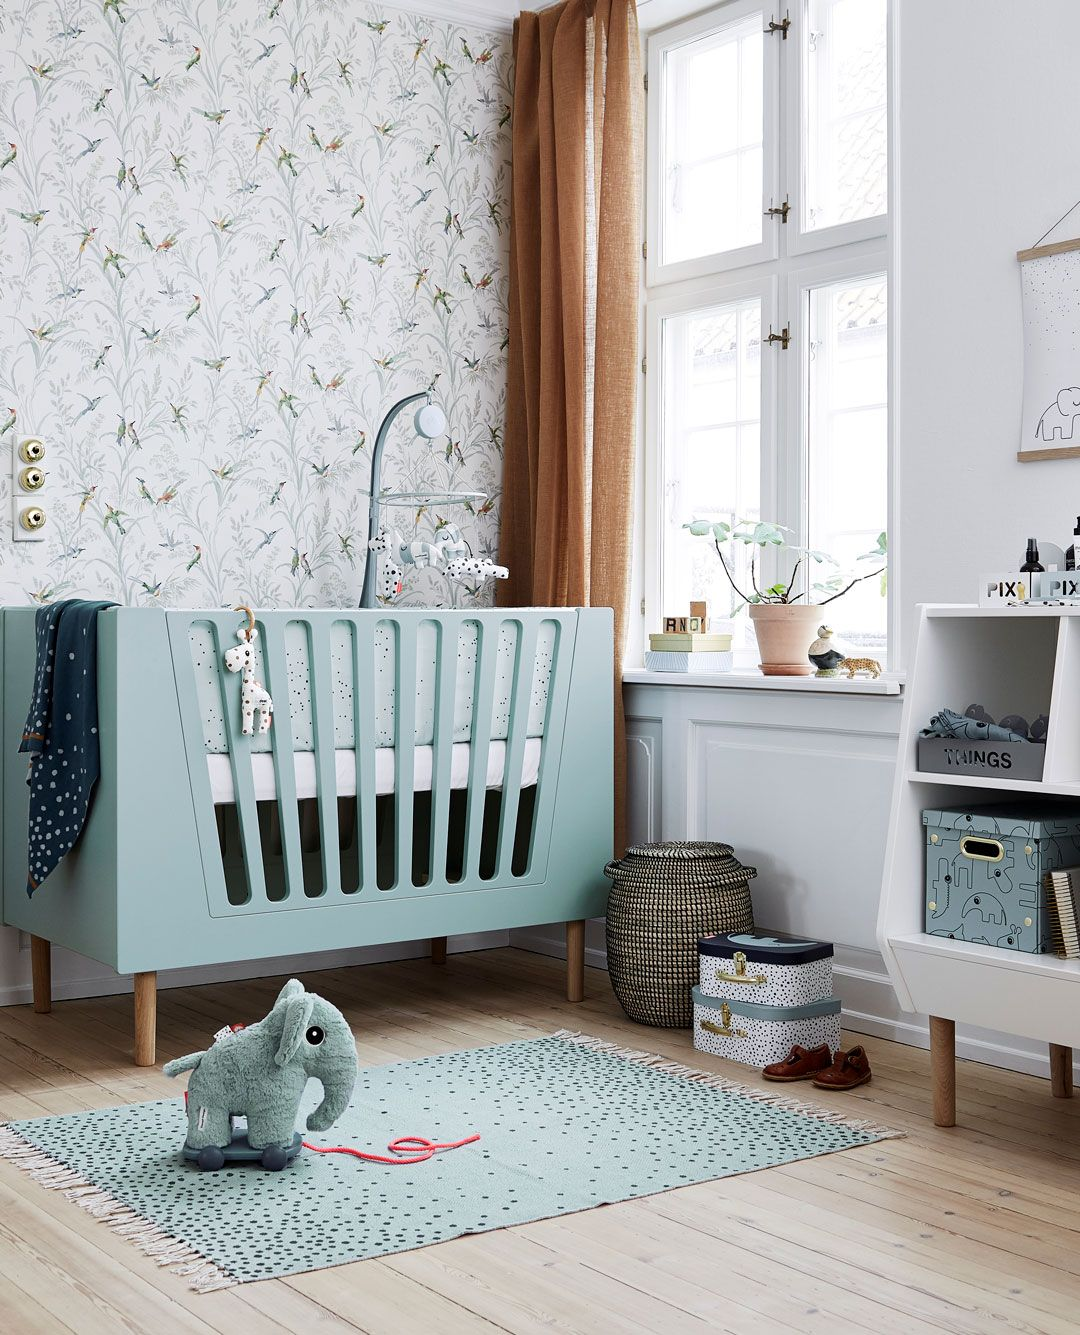 Minimalist Nursery Bedroom Furniture Design Ideas 5606: Set Up A Cozy And Inviting Nursery For Your Little One